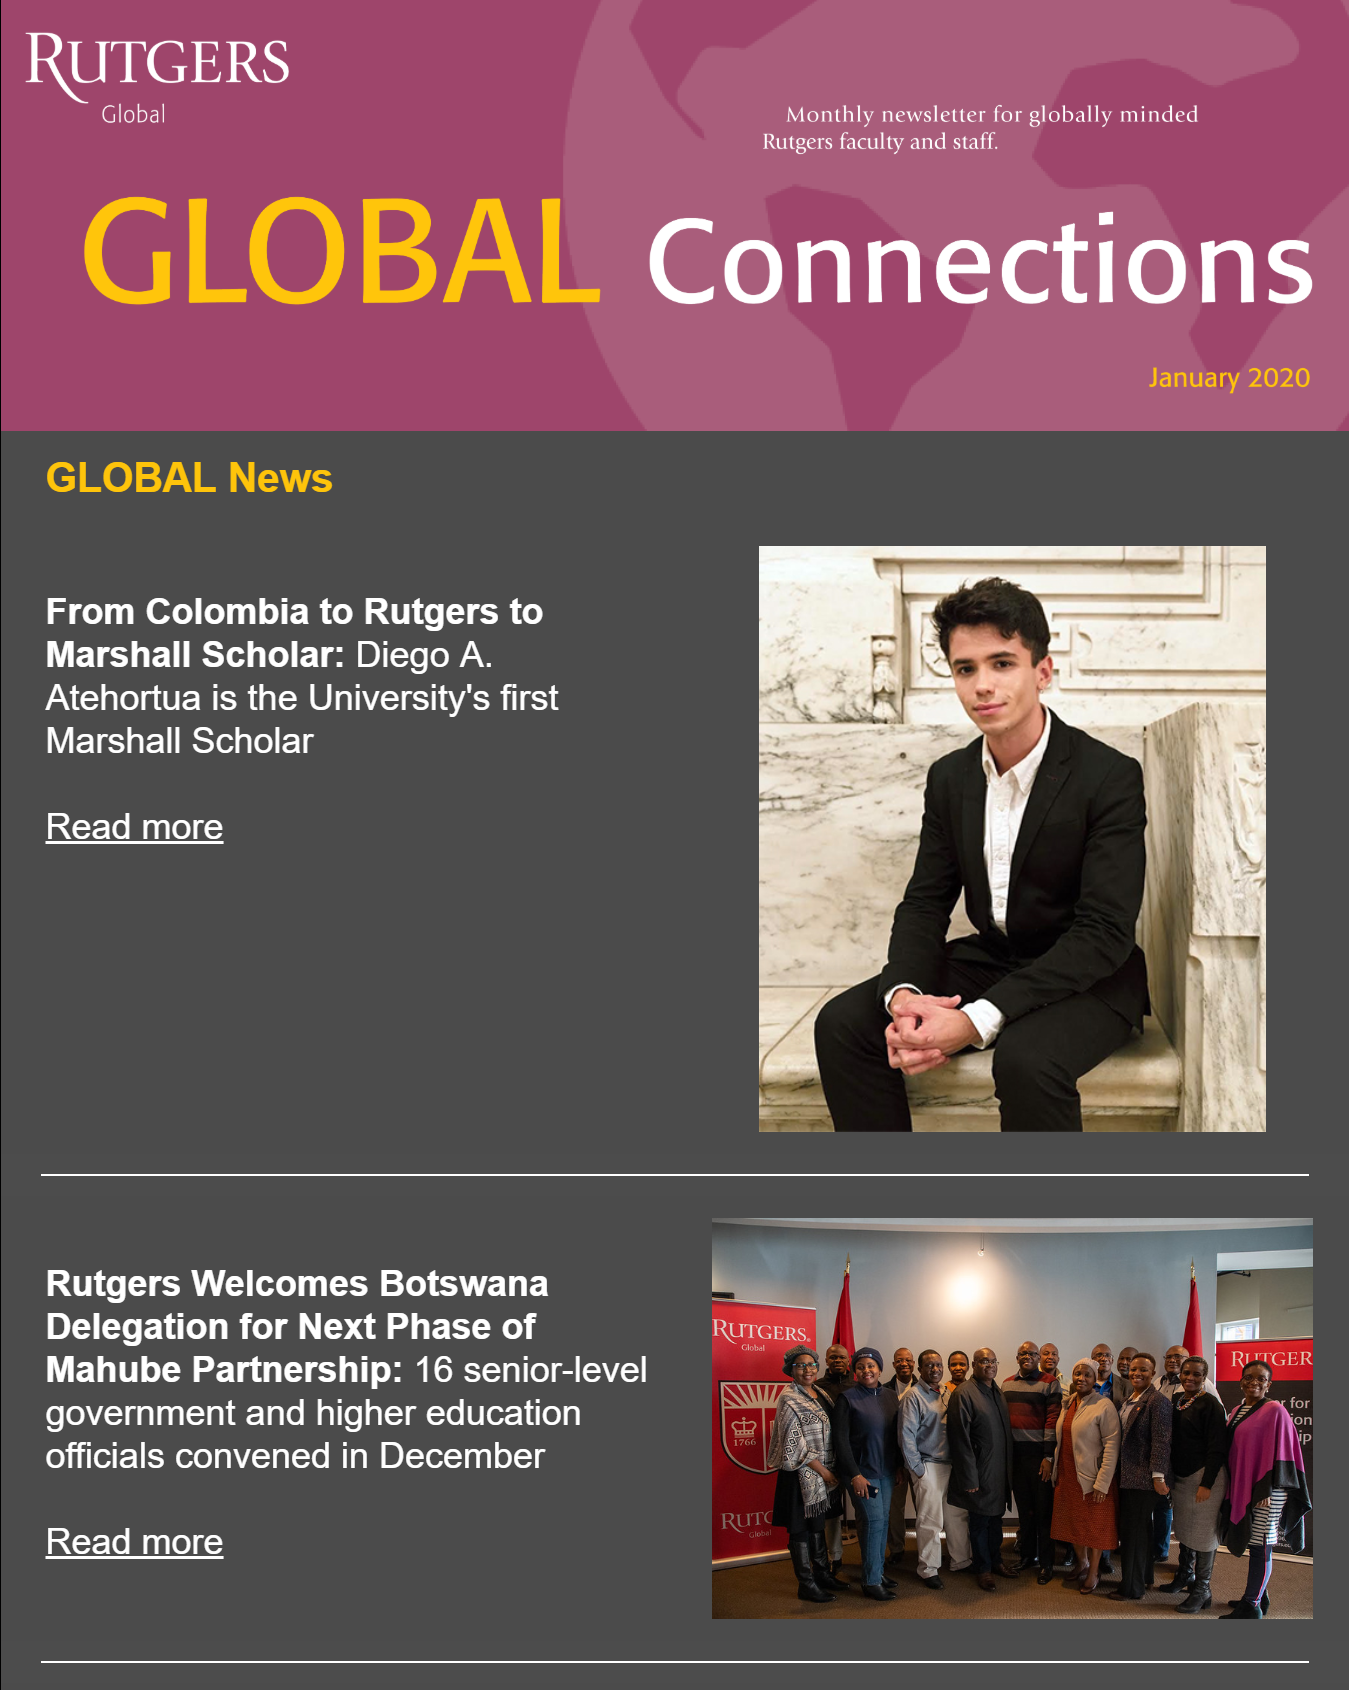 January 2020 Global Connections Thumbnail